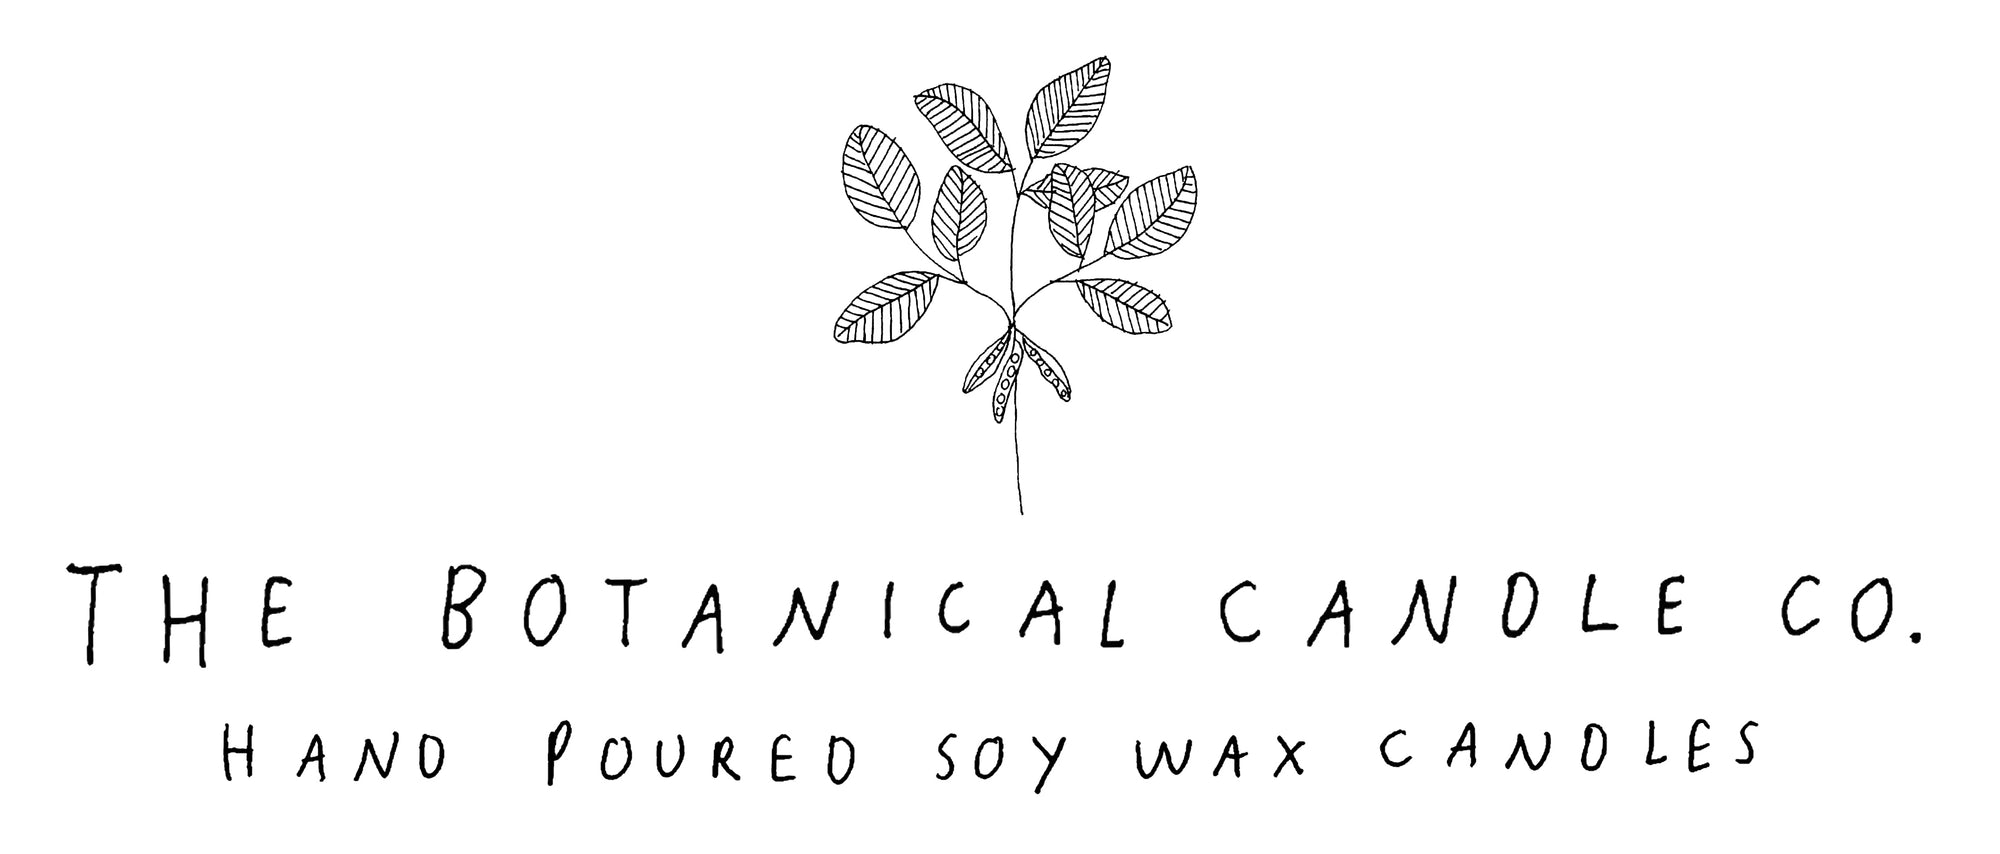 The Botanical Candle Company Limited